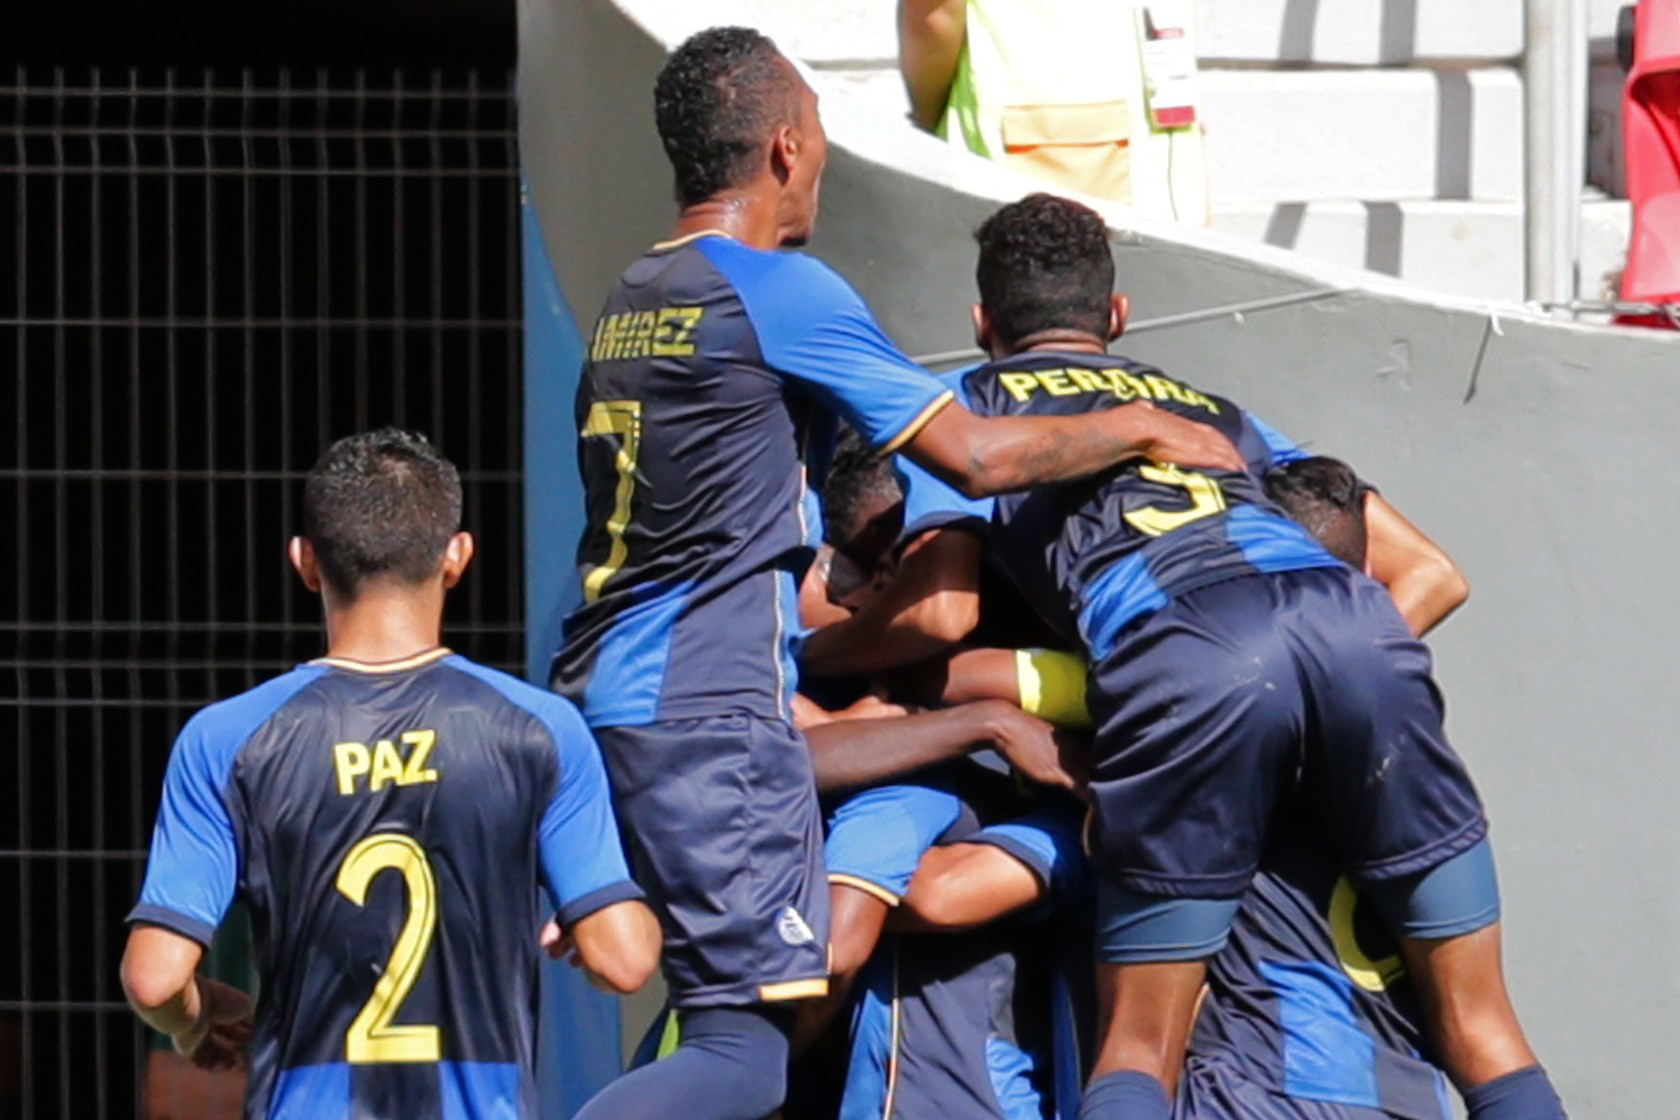 Honduras' celebrate after scoring the ir first goal during a Group D match of the men's Olympic football tournament between Argentina and Honduras at the National Stadium, in Brasilia, Brazil, Wednesday, Aug. 10, 2016. (AP Photo/Eraldo Peres)